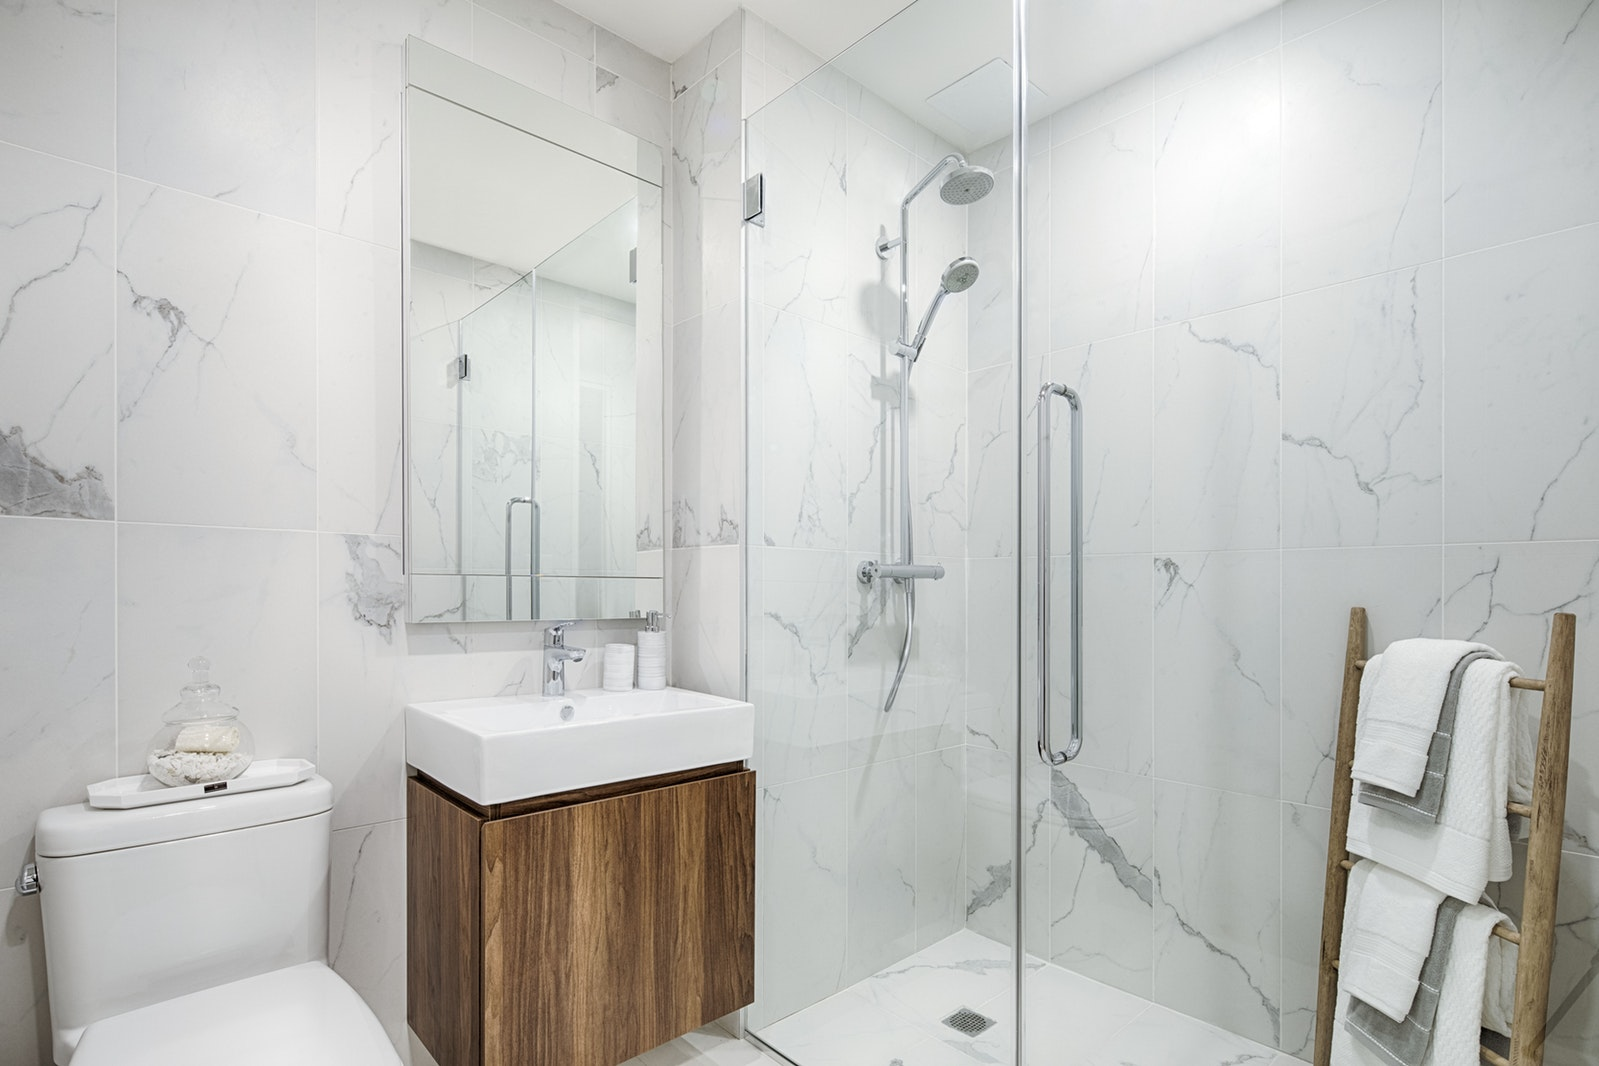 21 Powers Street 1a, Williamsburg, Brooklyn, NY, 11211, $1,249,000, Property For Sale, Halstead Real Estate, Photo 6